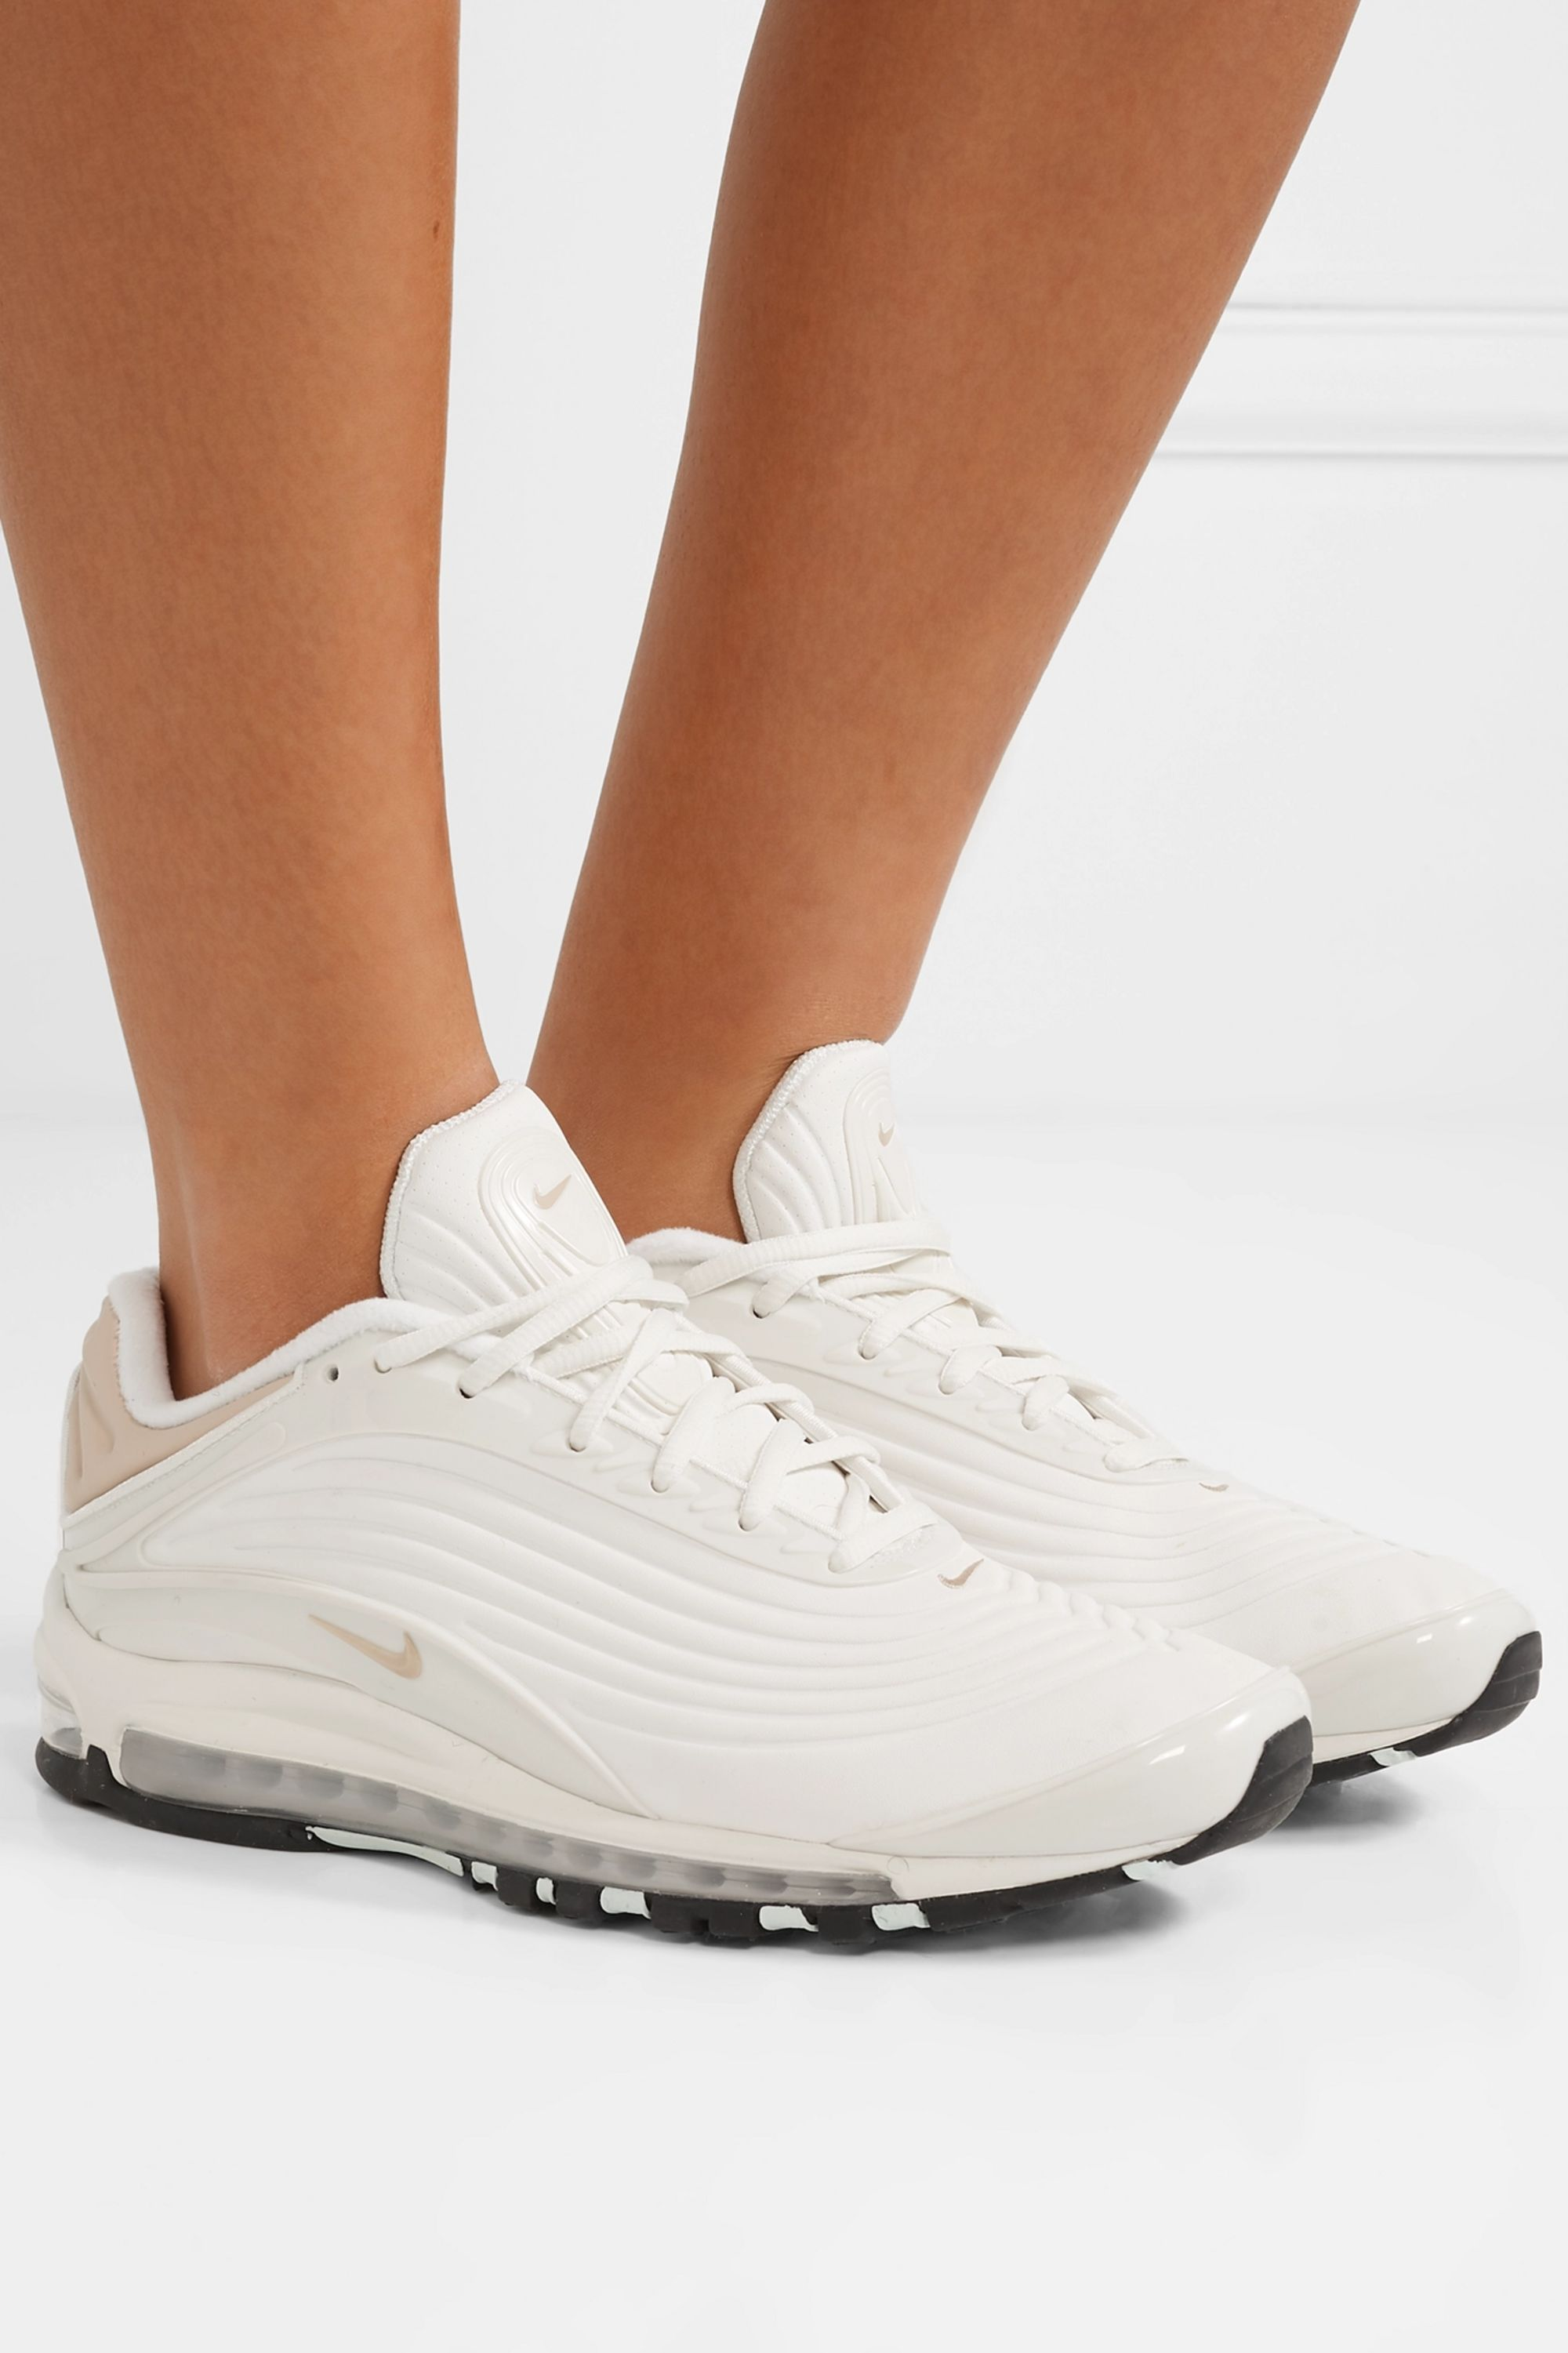 Cream Air Max Deluxe SE leather and